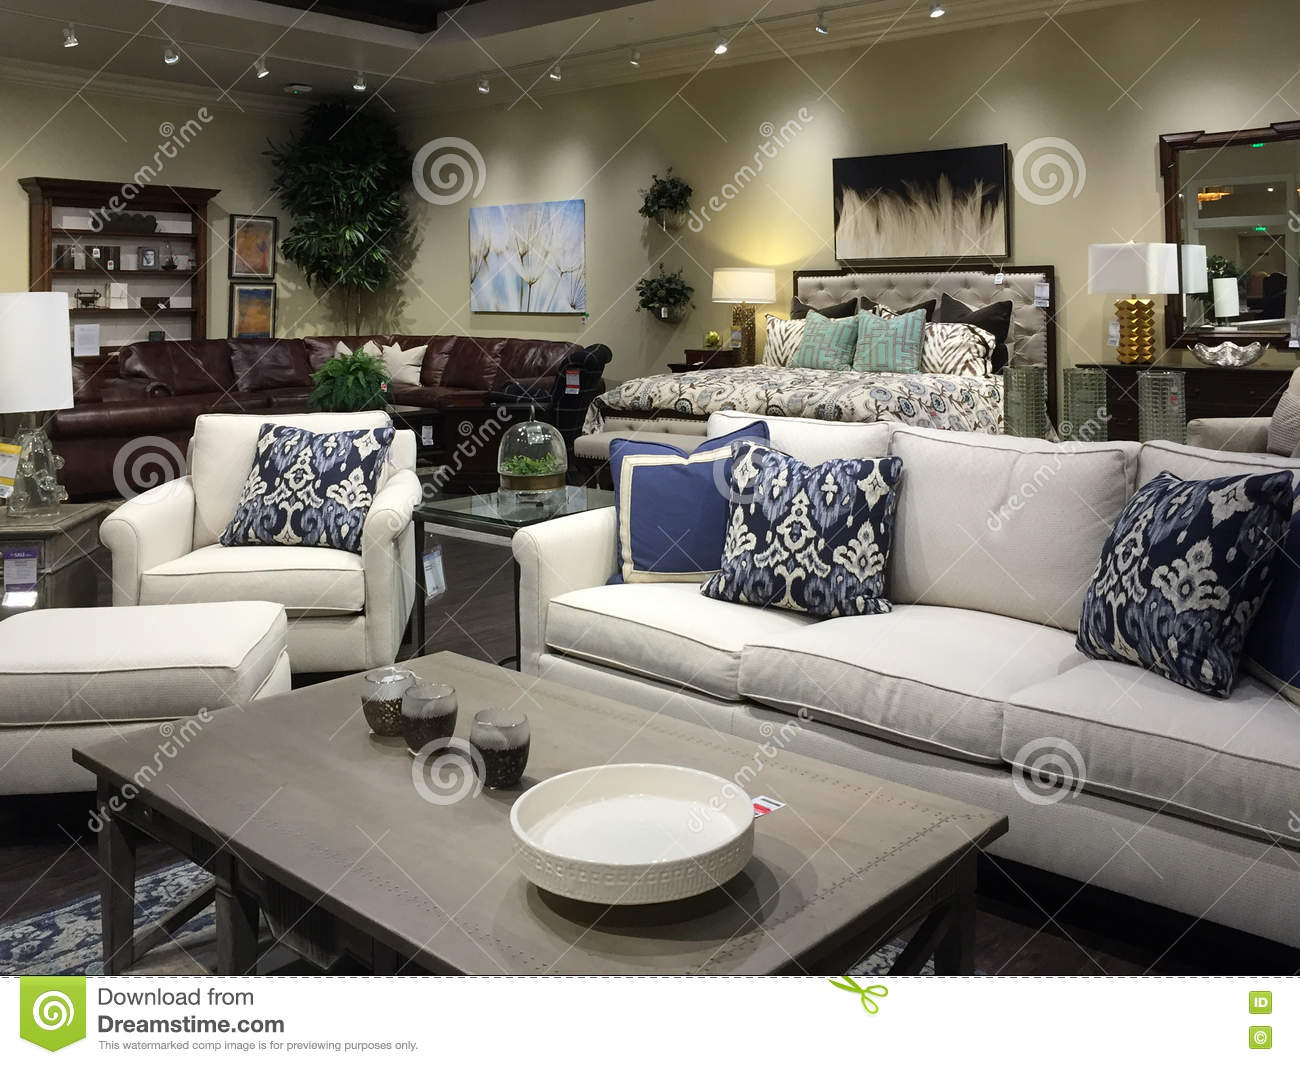 Nice sofa selling at store editorial image 48208040 Uk home furniture market